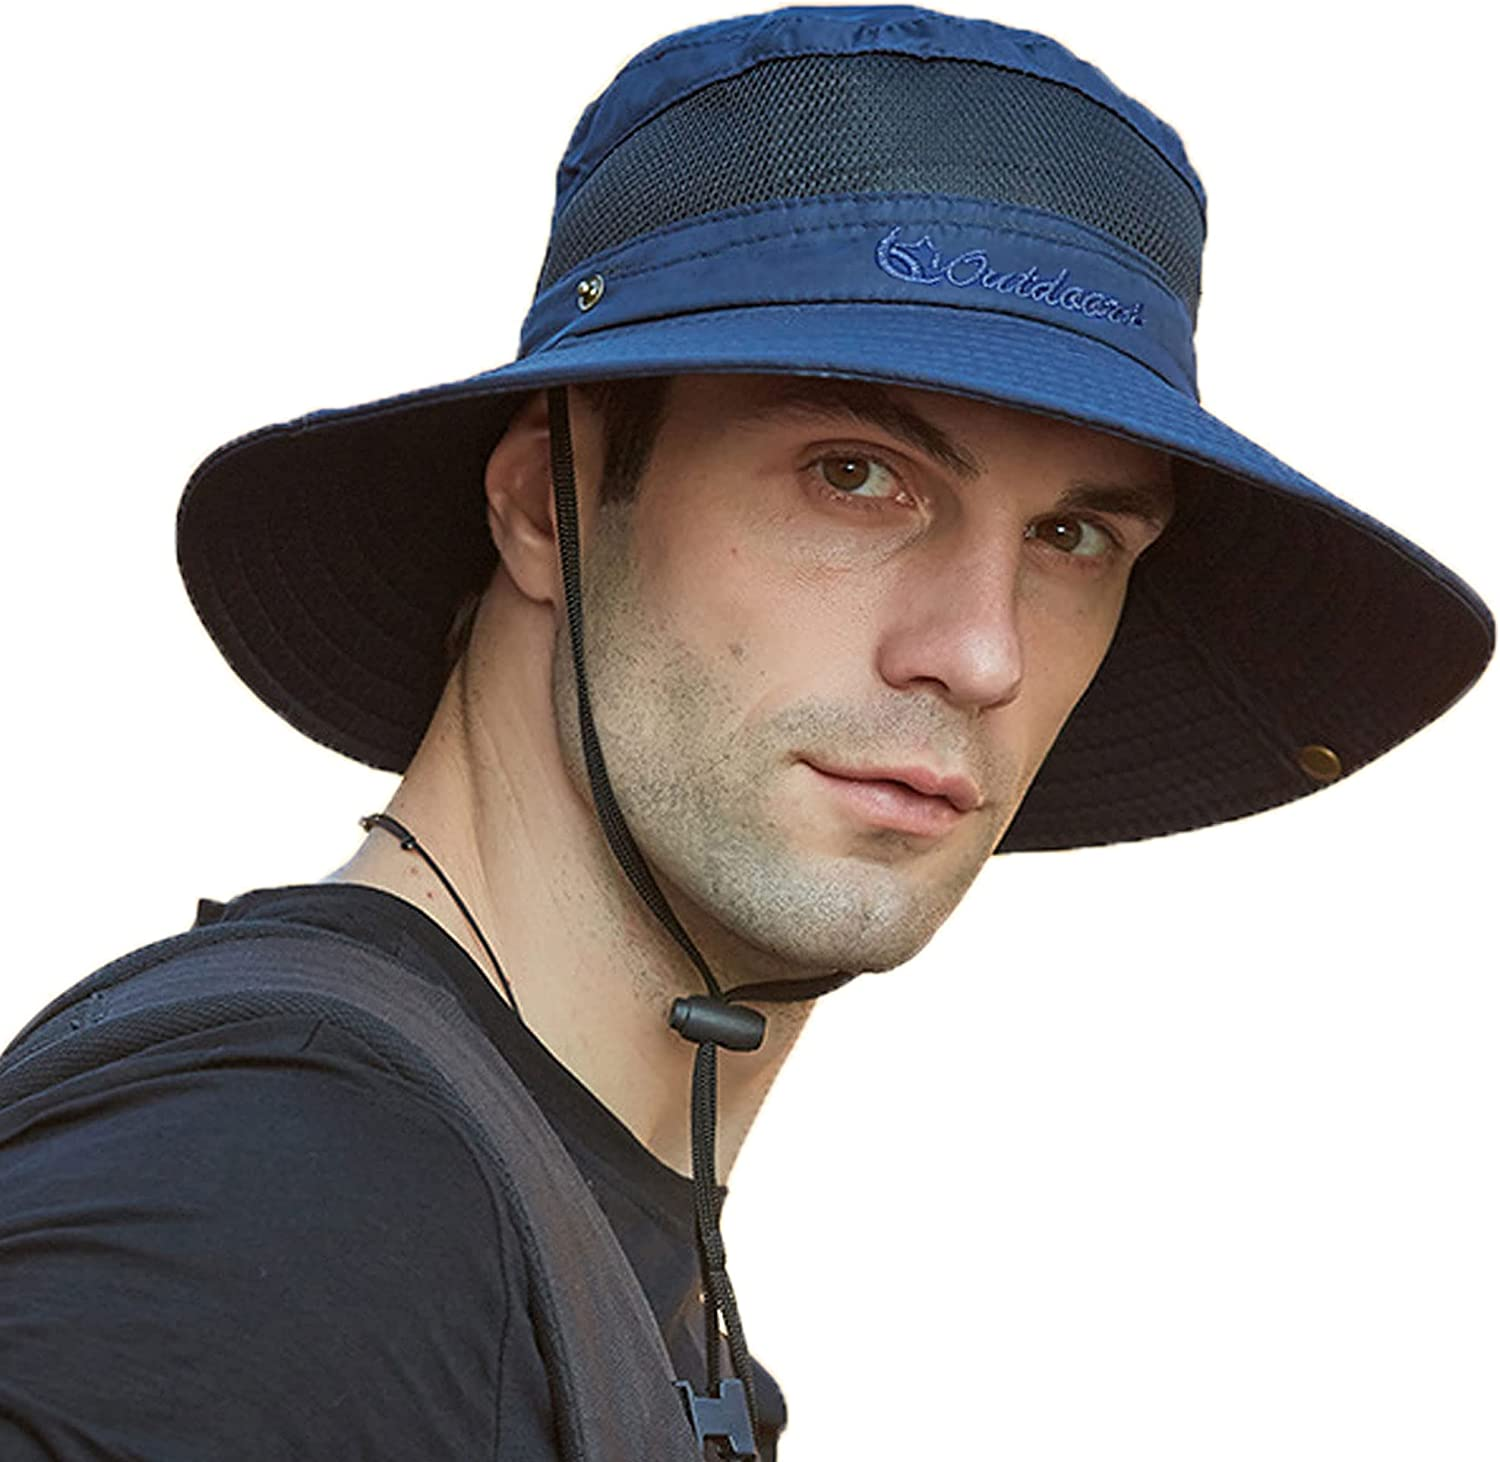 Sun Max 68% OFF hat-UV Protection and Luxury goods for Outdoor Fishing Hiking Advent